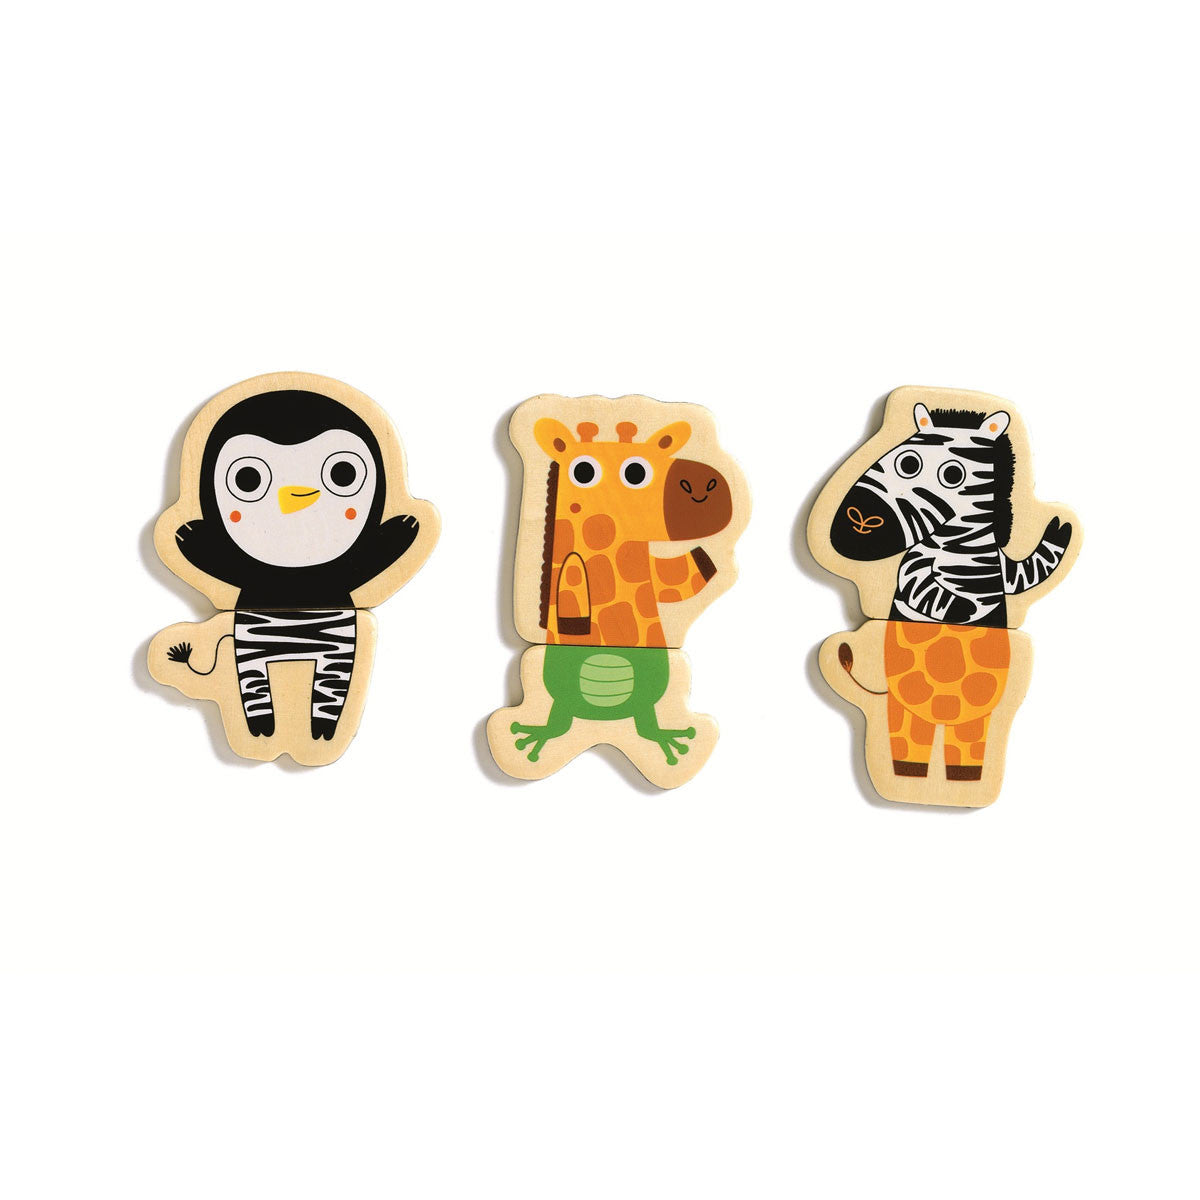 Djeco Cou Cou Animals Wooden Magnet Set Djeco Magnet Toys at Little Earth Nest Eco Shop